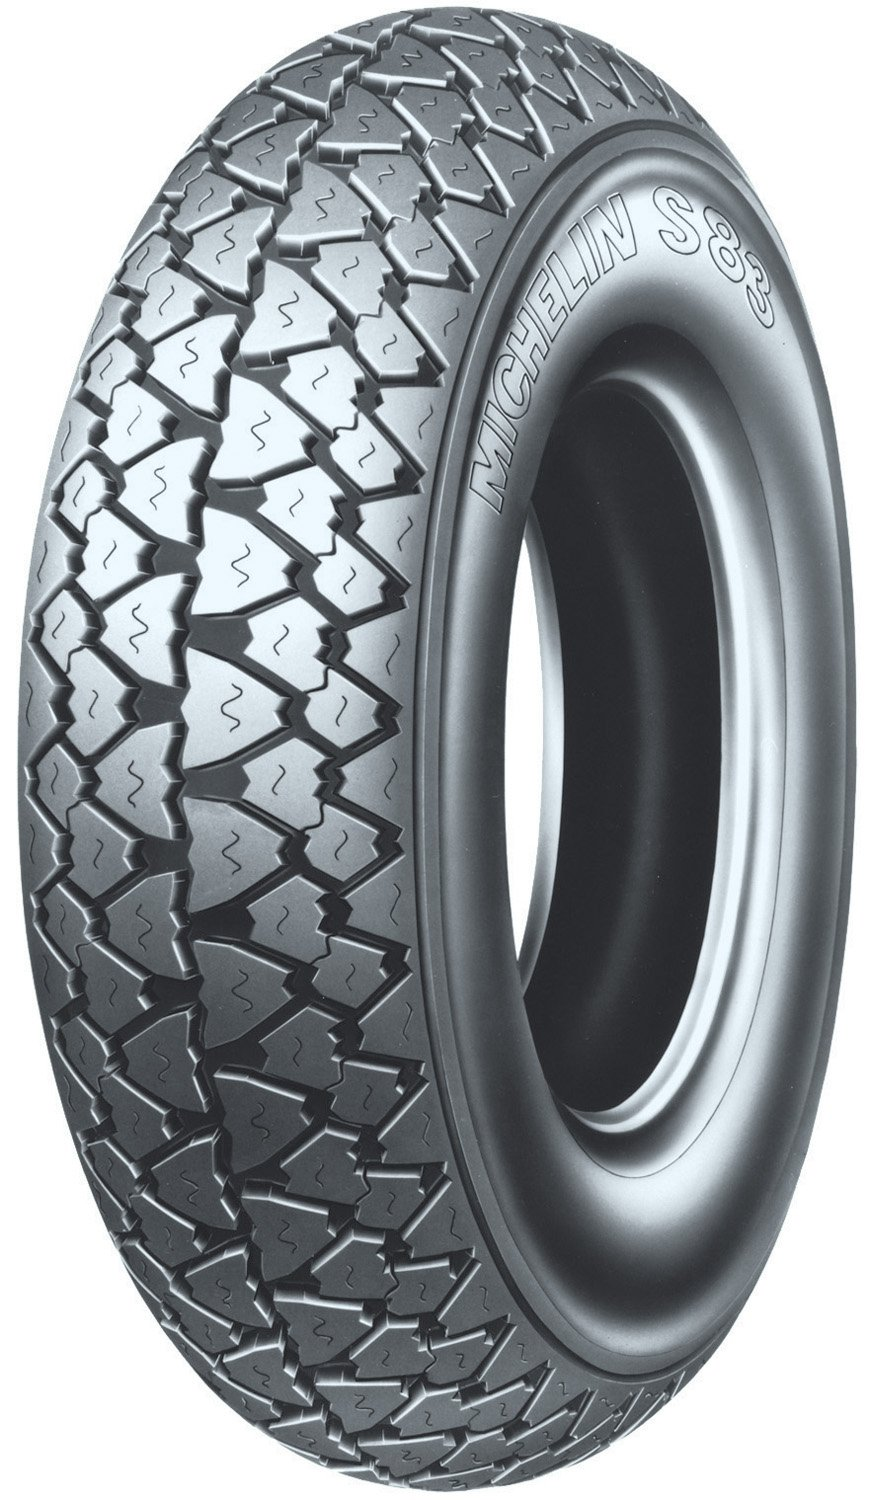 Michelin S83 Utility Scooter Tire Front/Rear 3.50-10 by MICHELIN